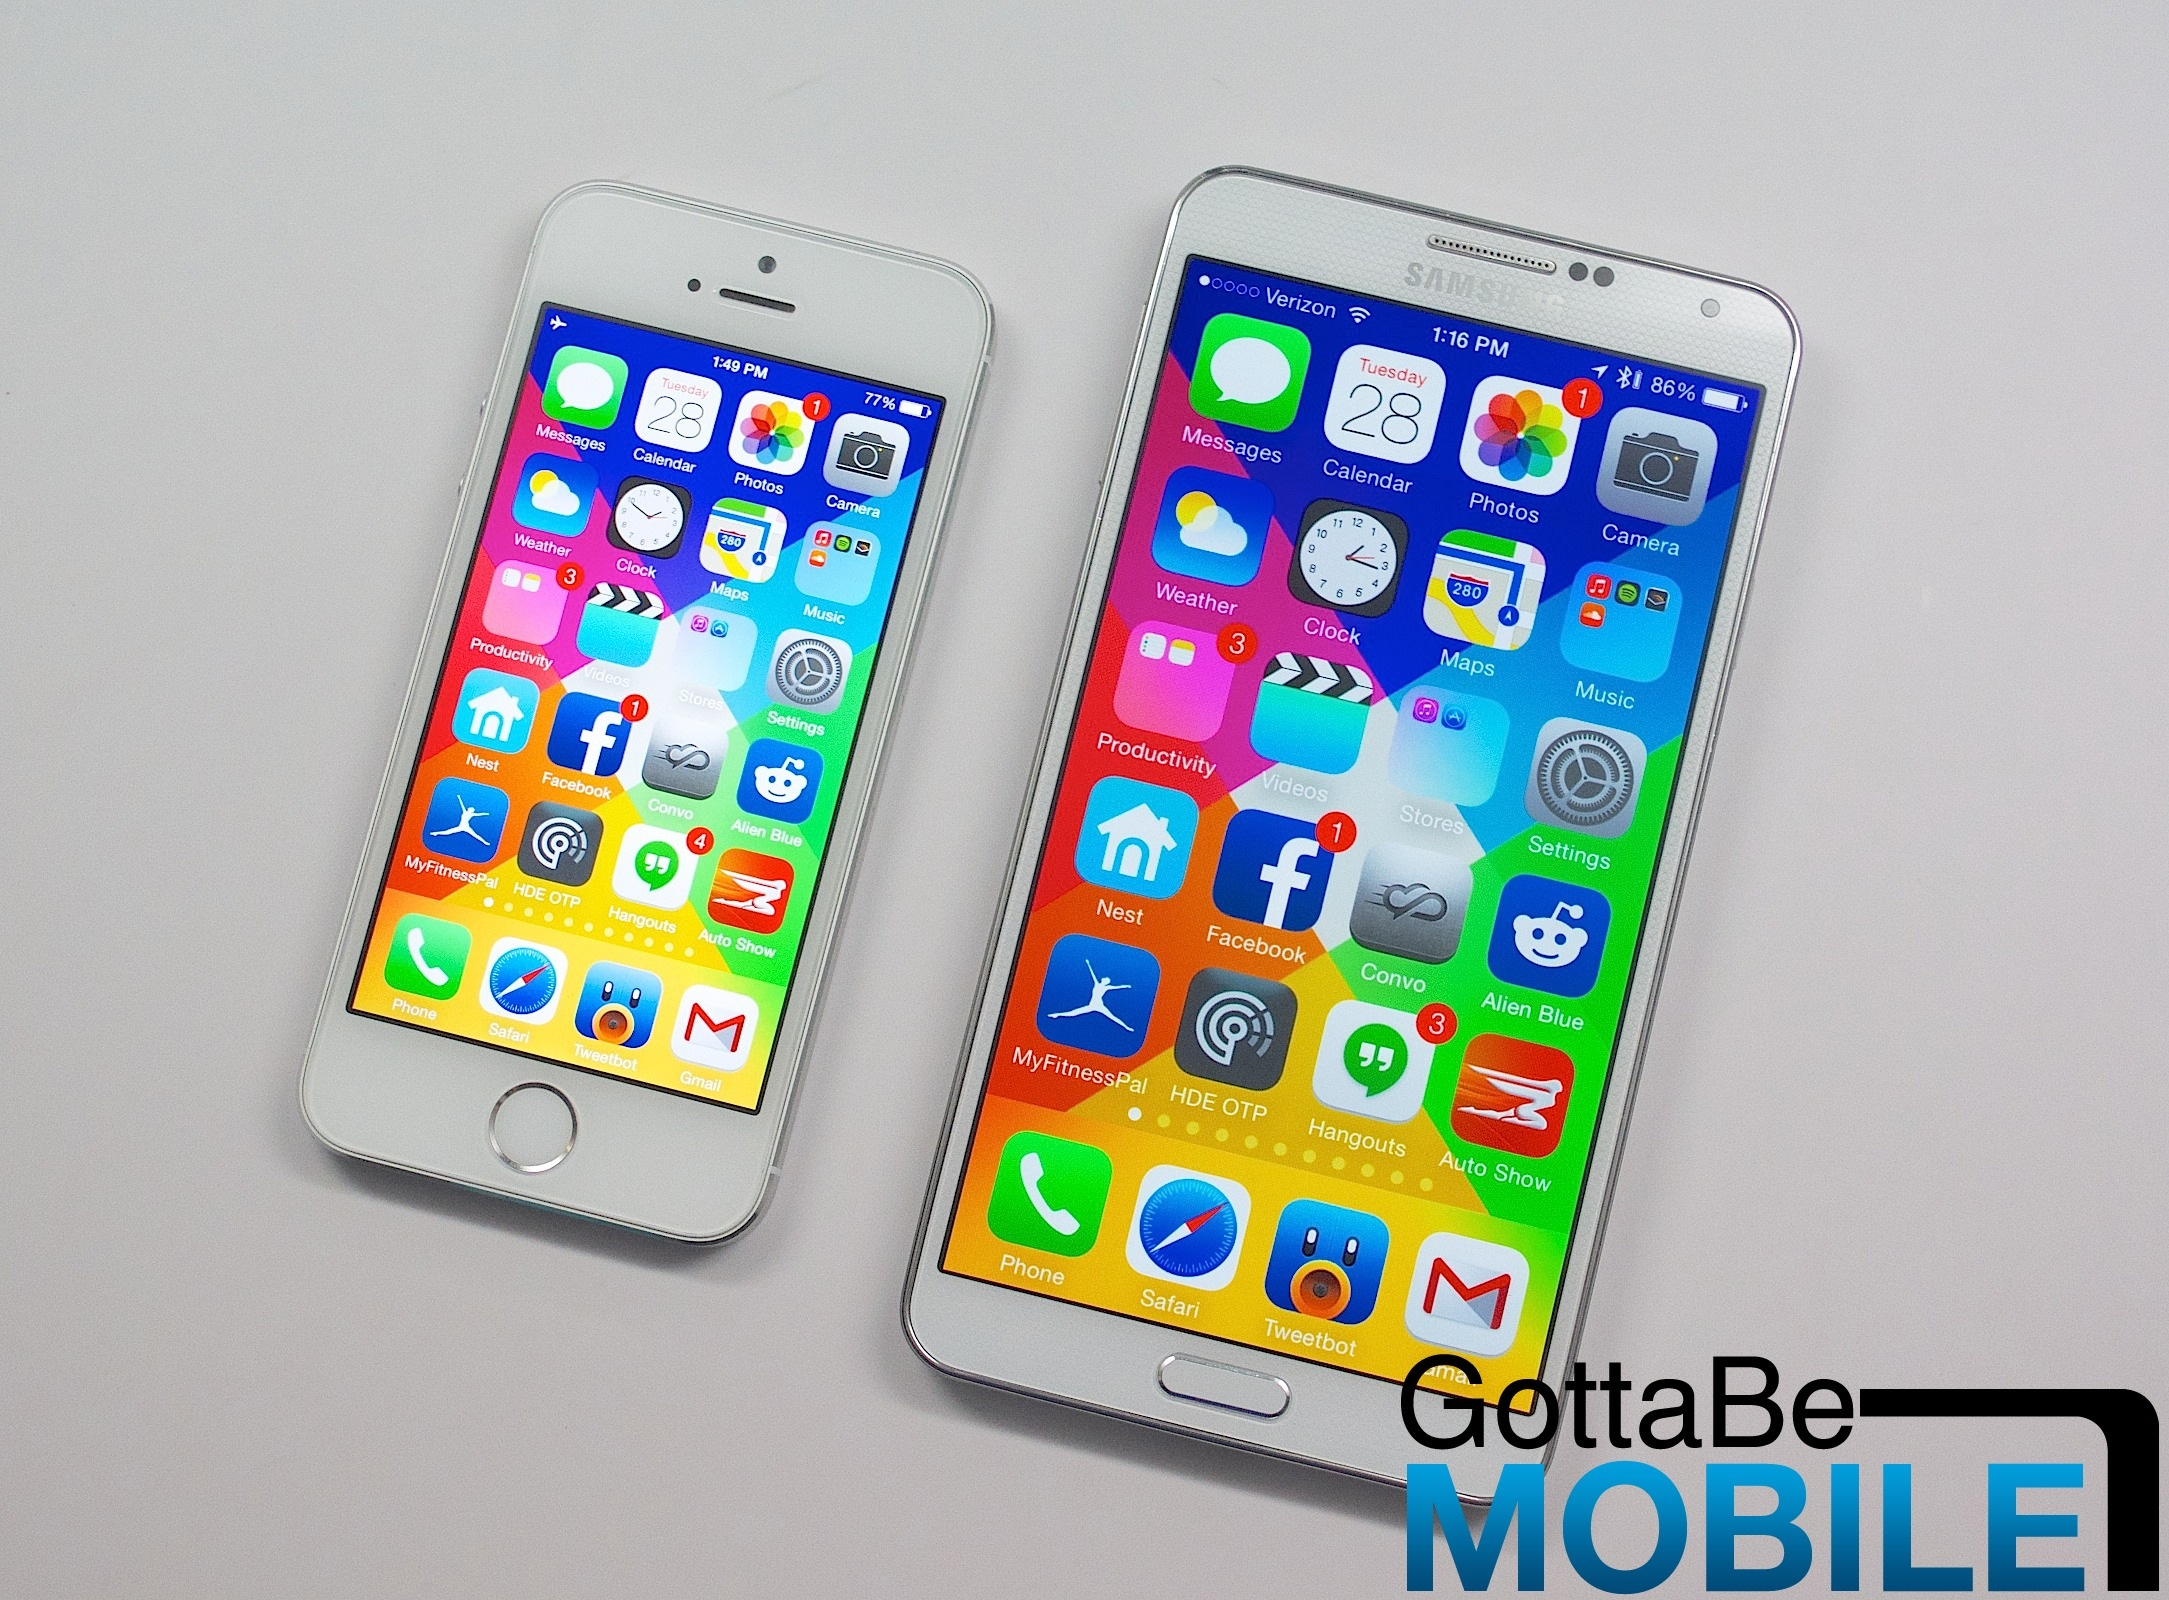 iPhone 6 Screen Sizes Visualized (Video)